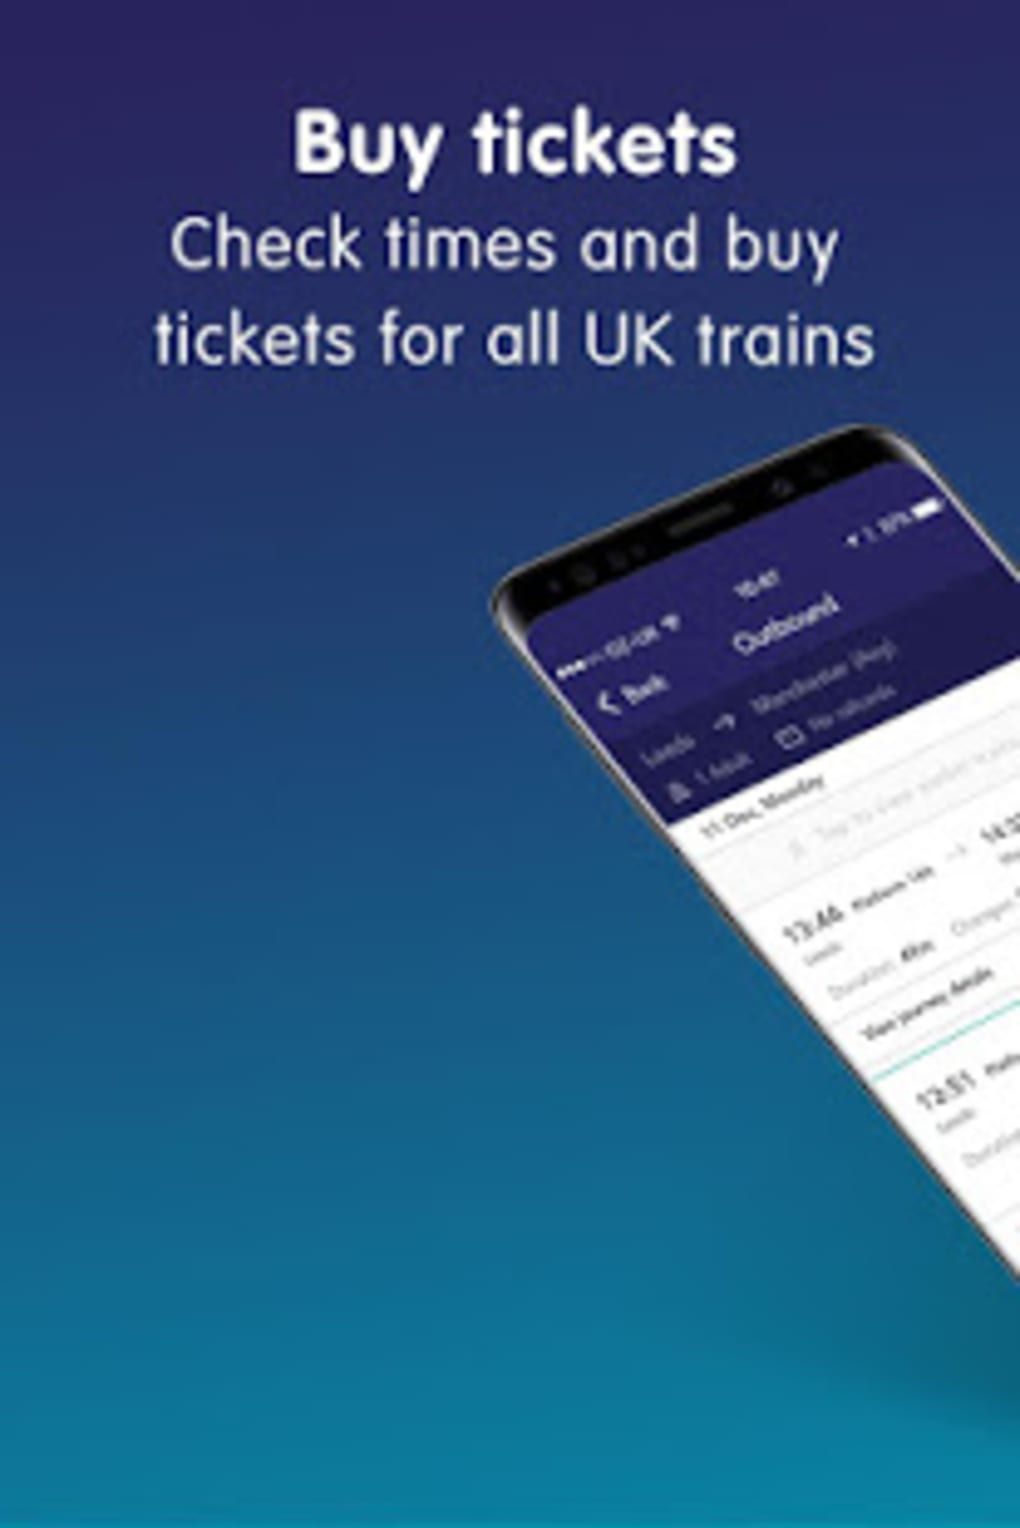 Northern train tickets times for Android - Download